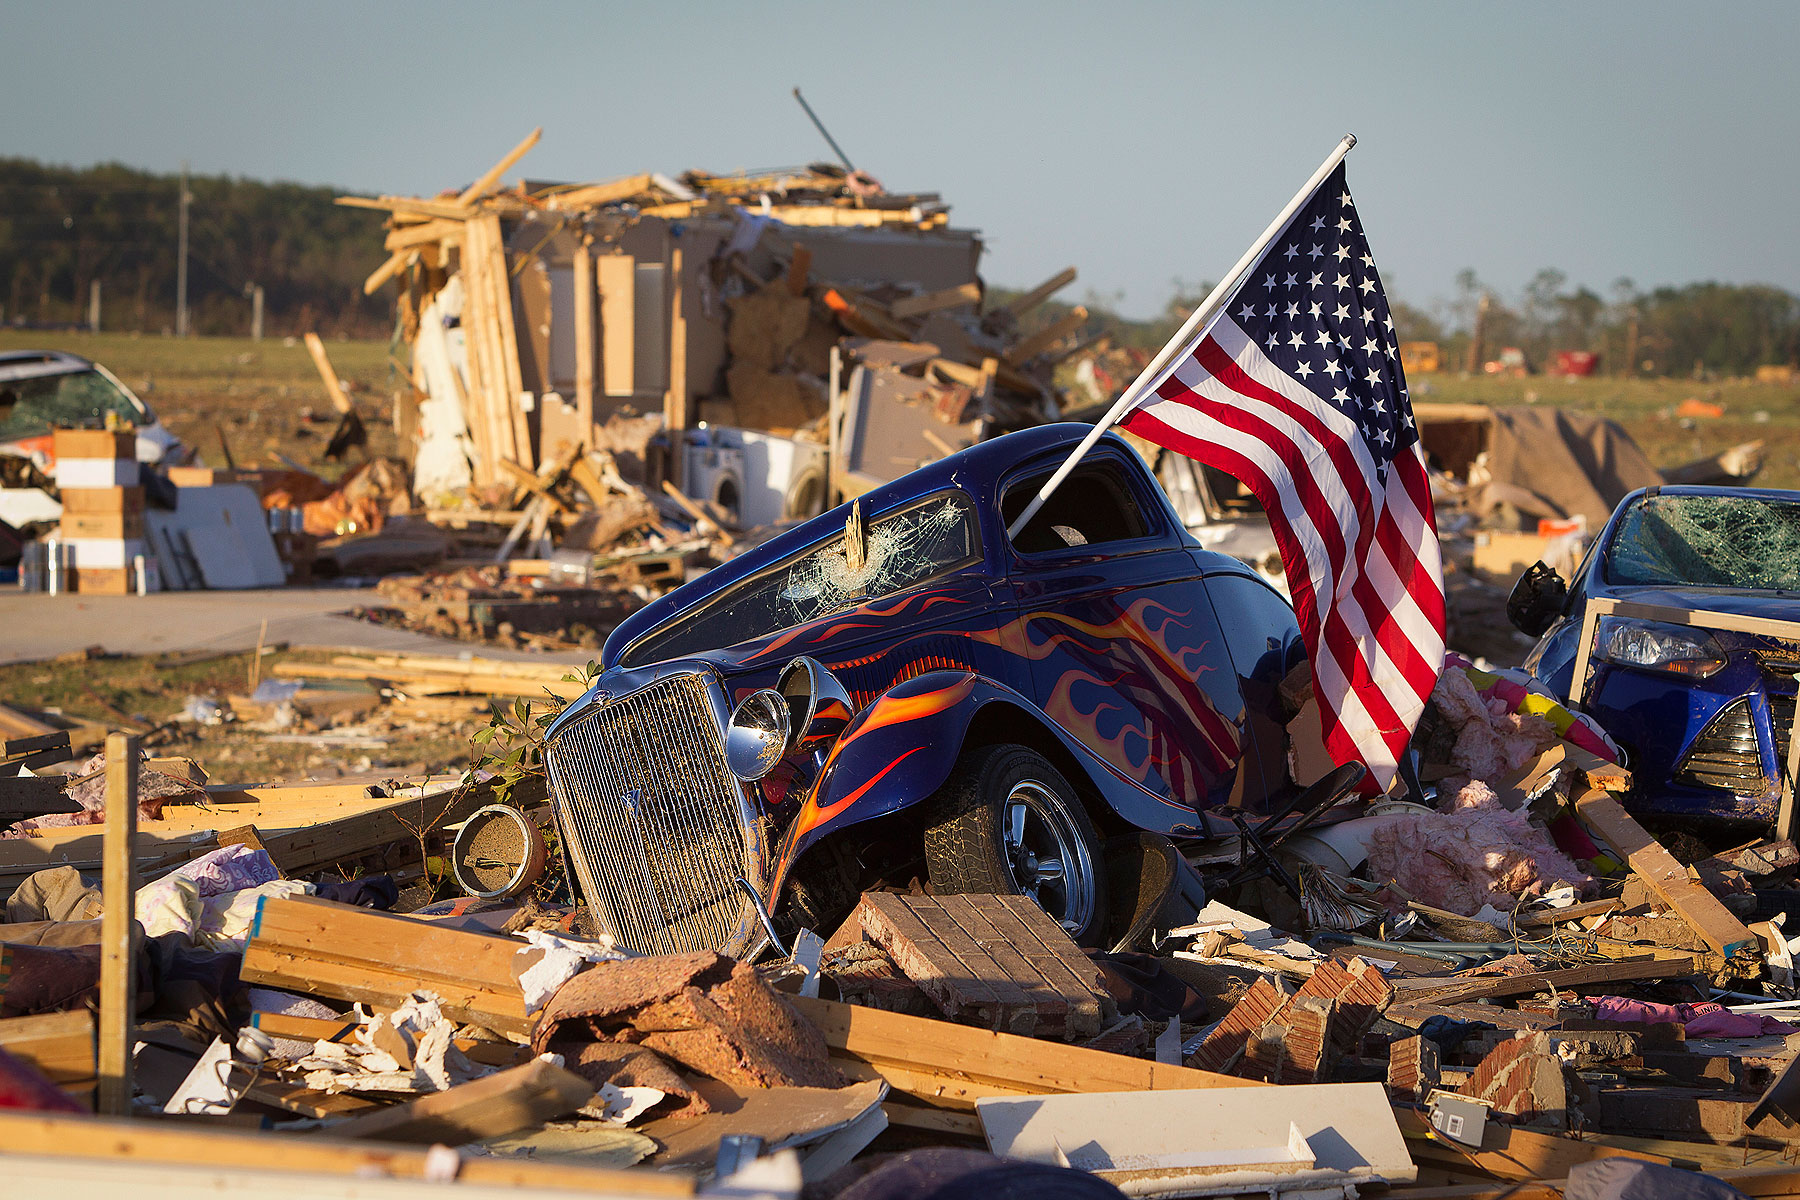 A U.S. flag sticks out the window of a damaged hot rod car in a suburban area after a tornado near Vilonia, Arkansas April 28, 2014